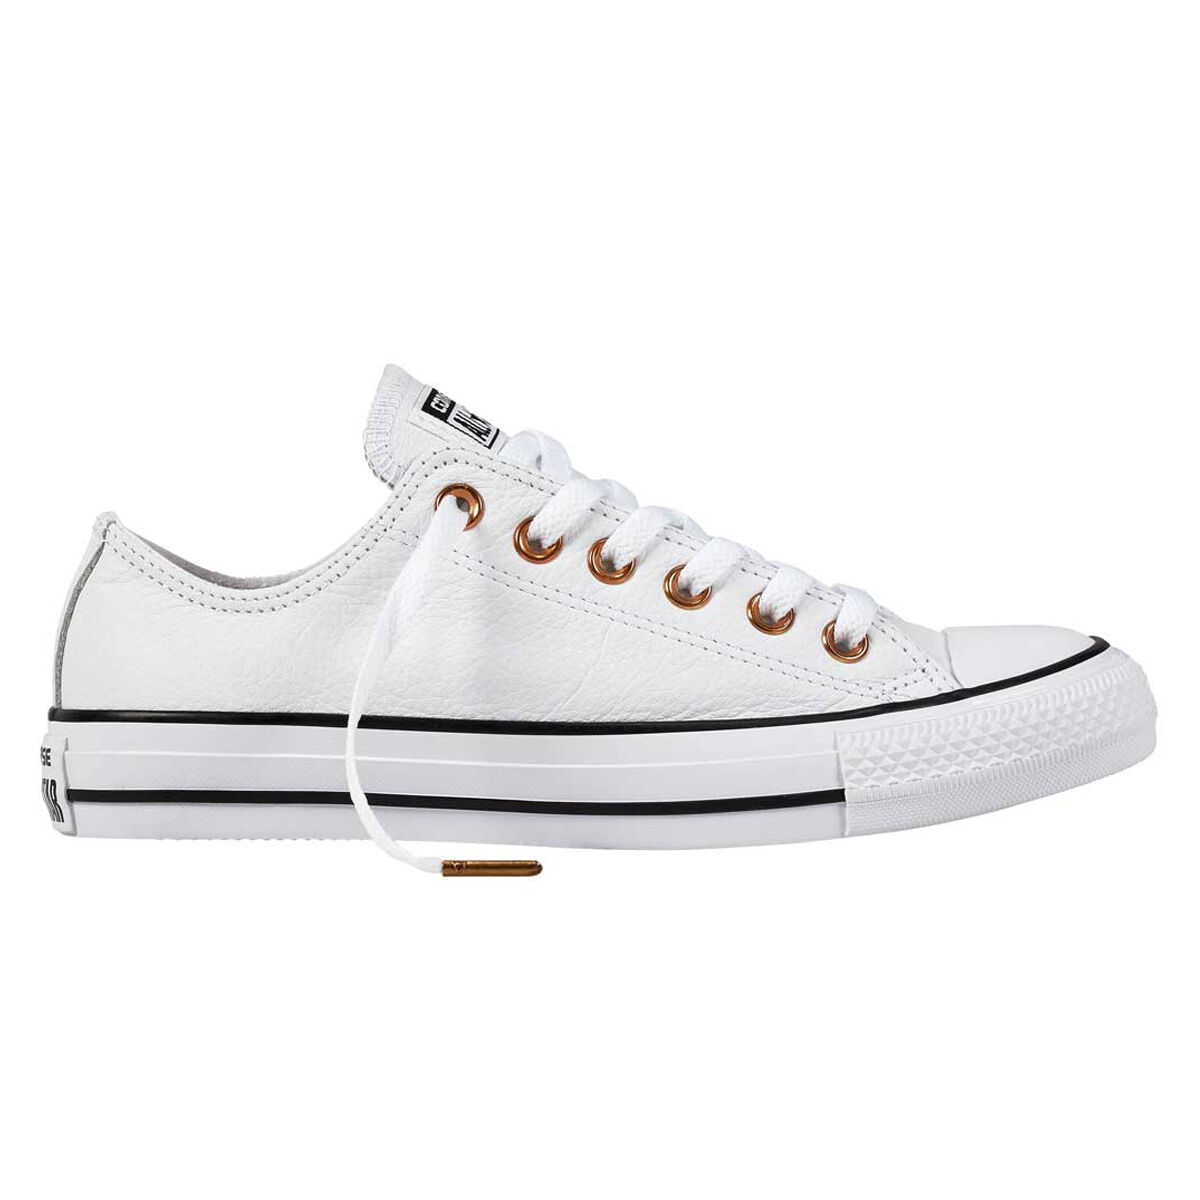 Converse Chuck Taylor All Star Low Office Womens Casual Shoes White Black US 6